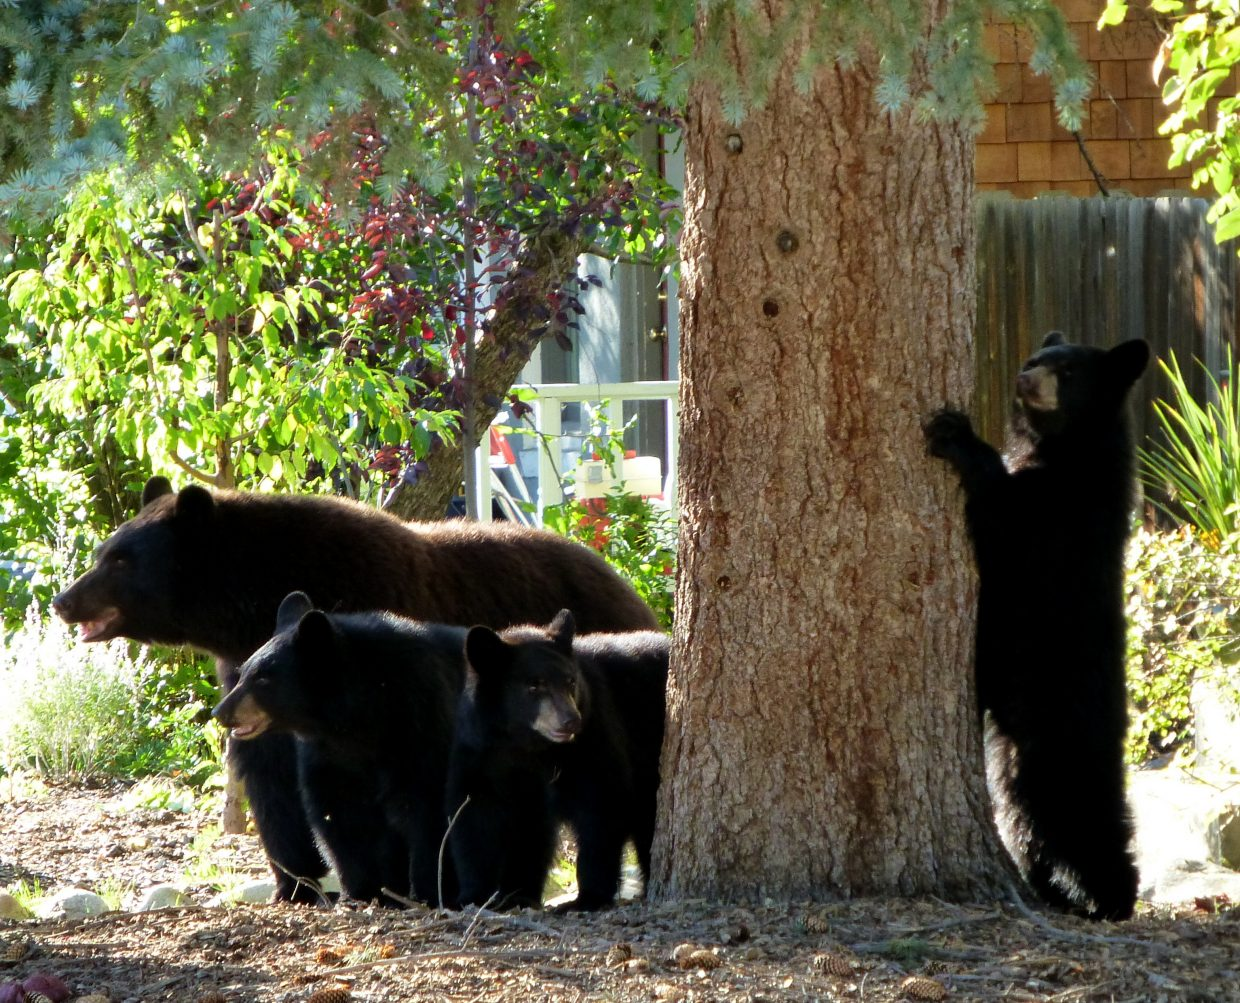 Bear pics from our neighbor's house downtown Sunday. Submitted by: Gail Hanley